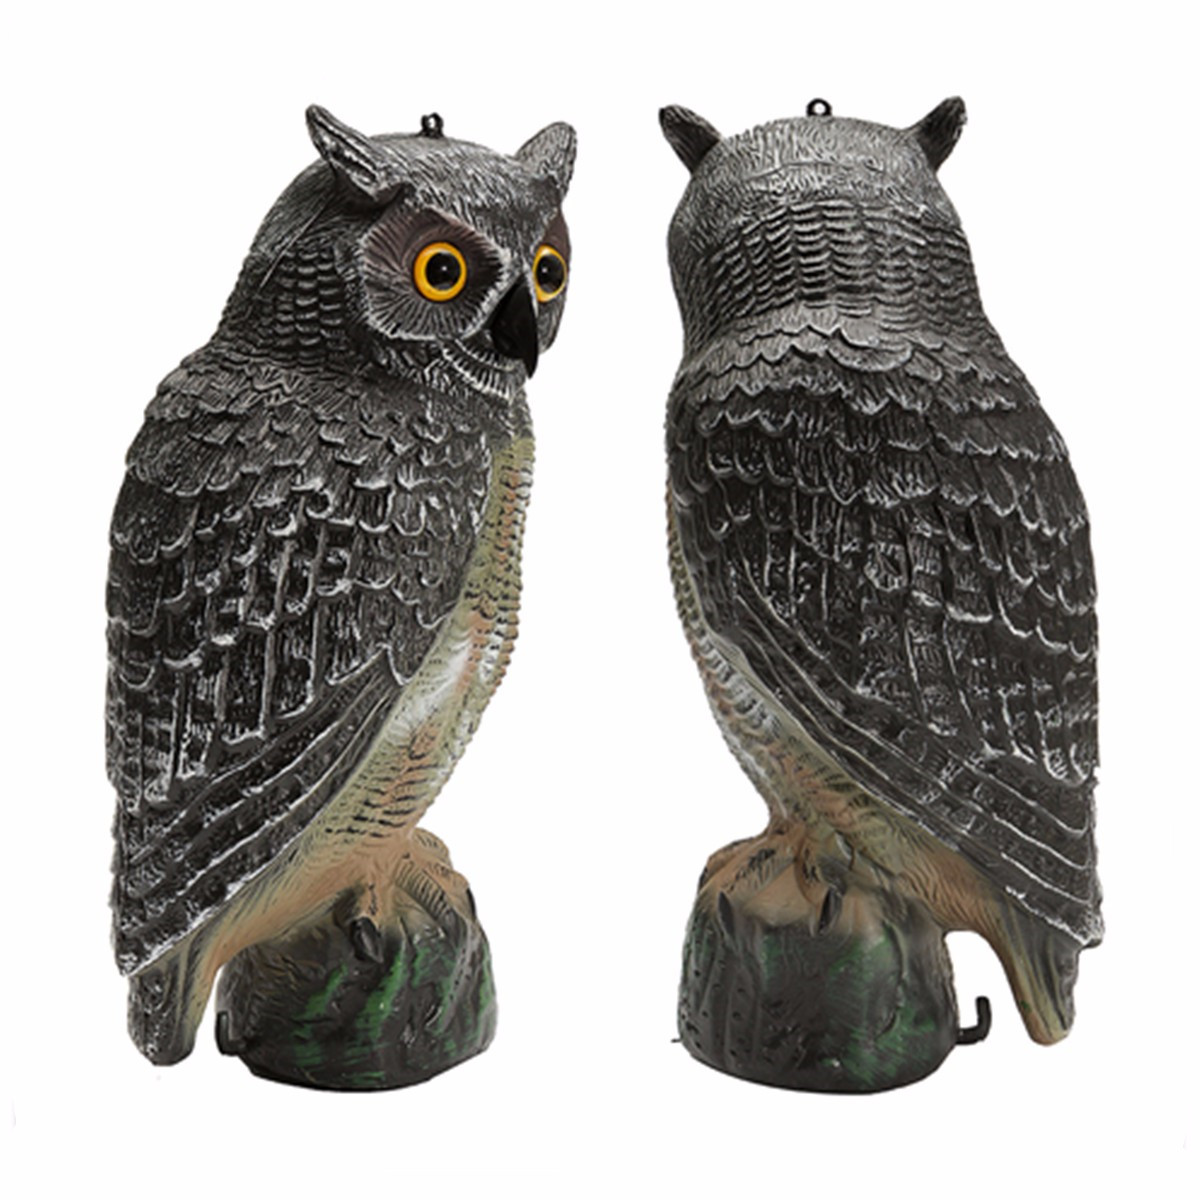 40x19x18cm Outdoor Hunting Large Realistic Owl Decoy Straight Head Pest Control Crow Fake Garden Yards Scarer Scarecrow Pest